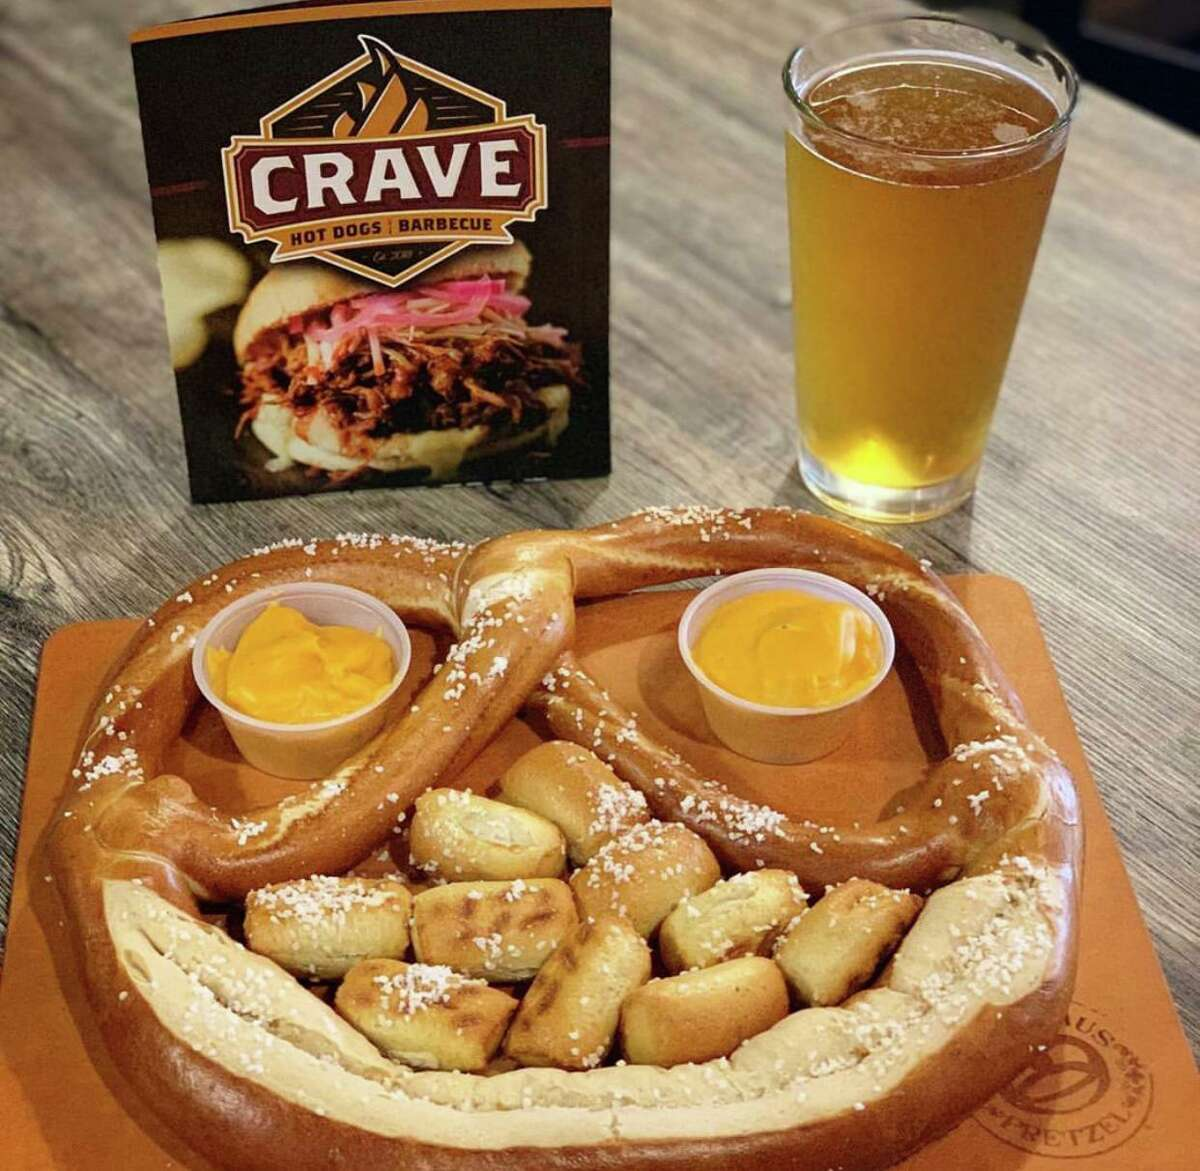 Crave Hot Dogs & Barbecue will open at 14303 E. Sam Houston Parkway N., Ste. 800, Houston, in mixed-use development Westlake Marketplace in late October.